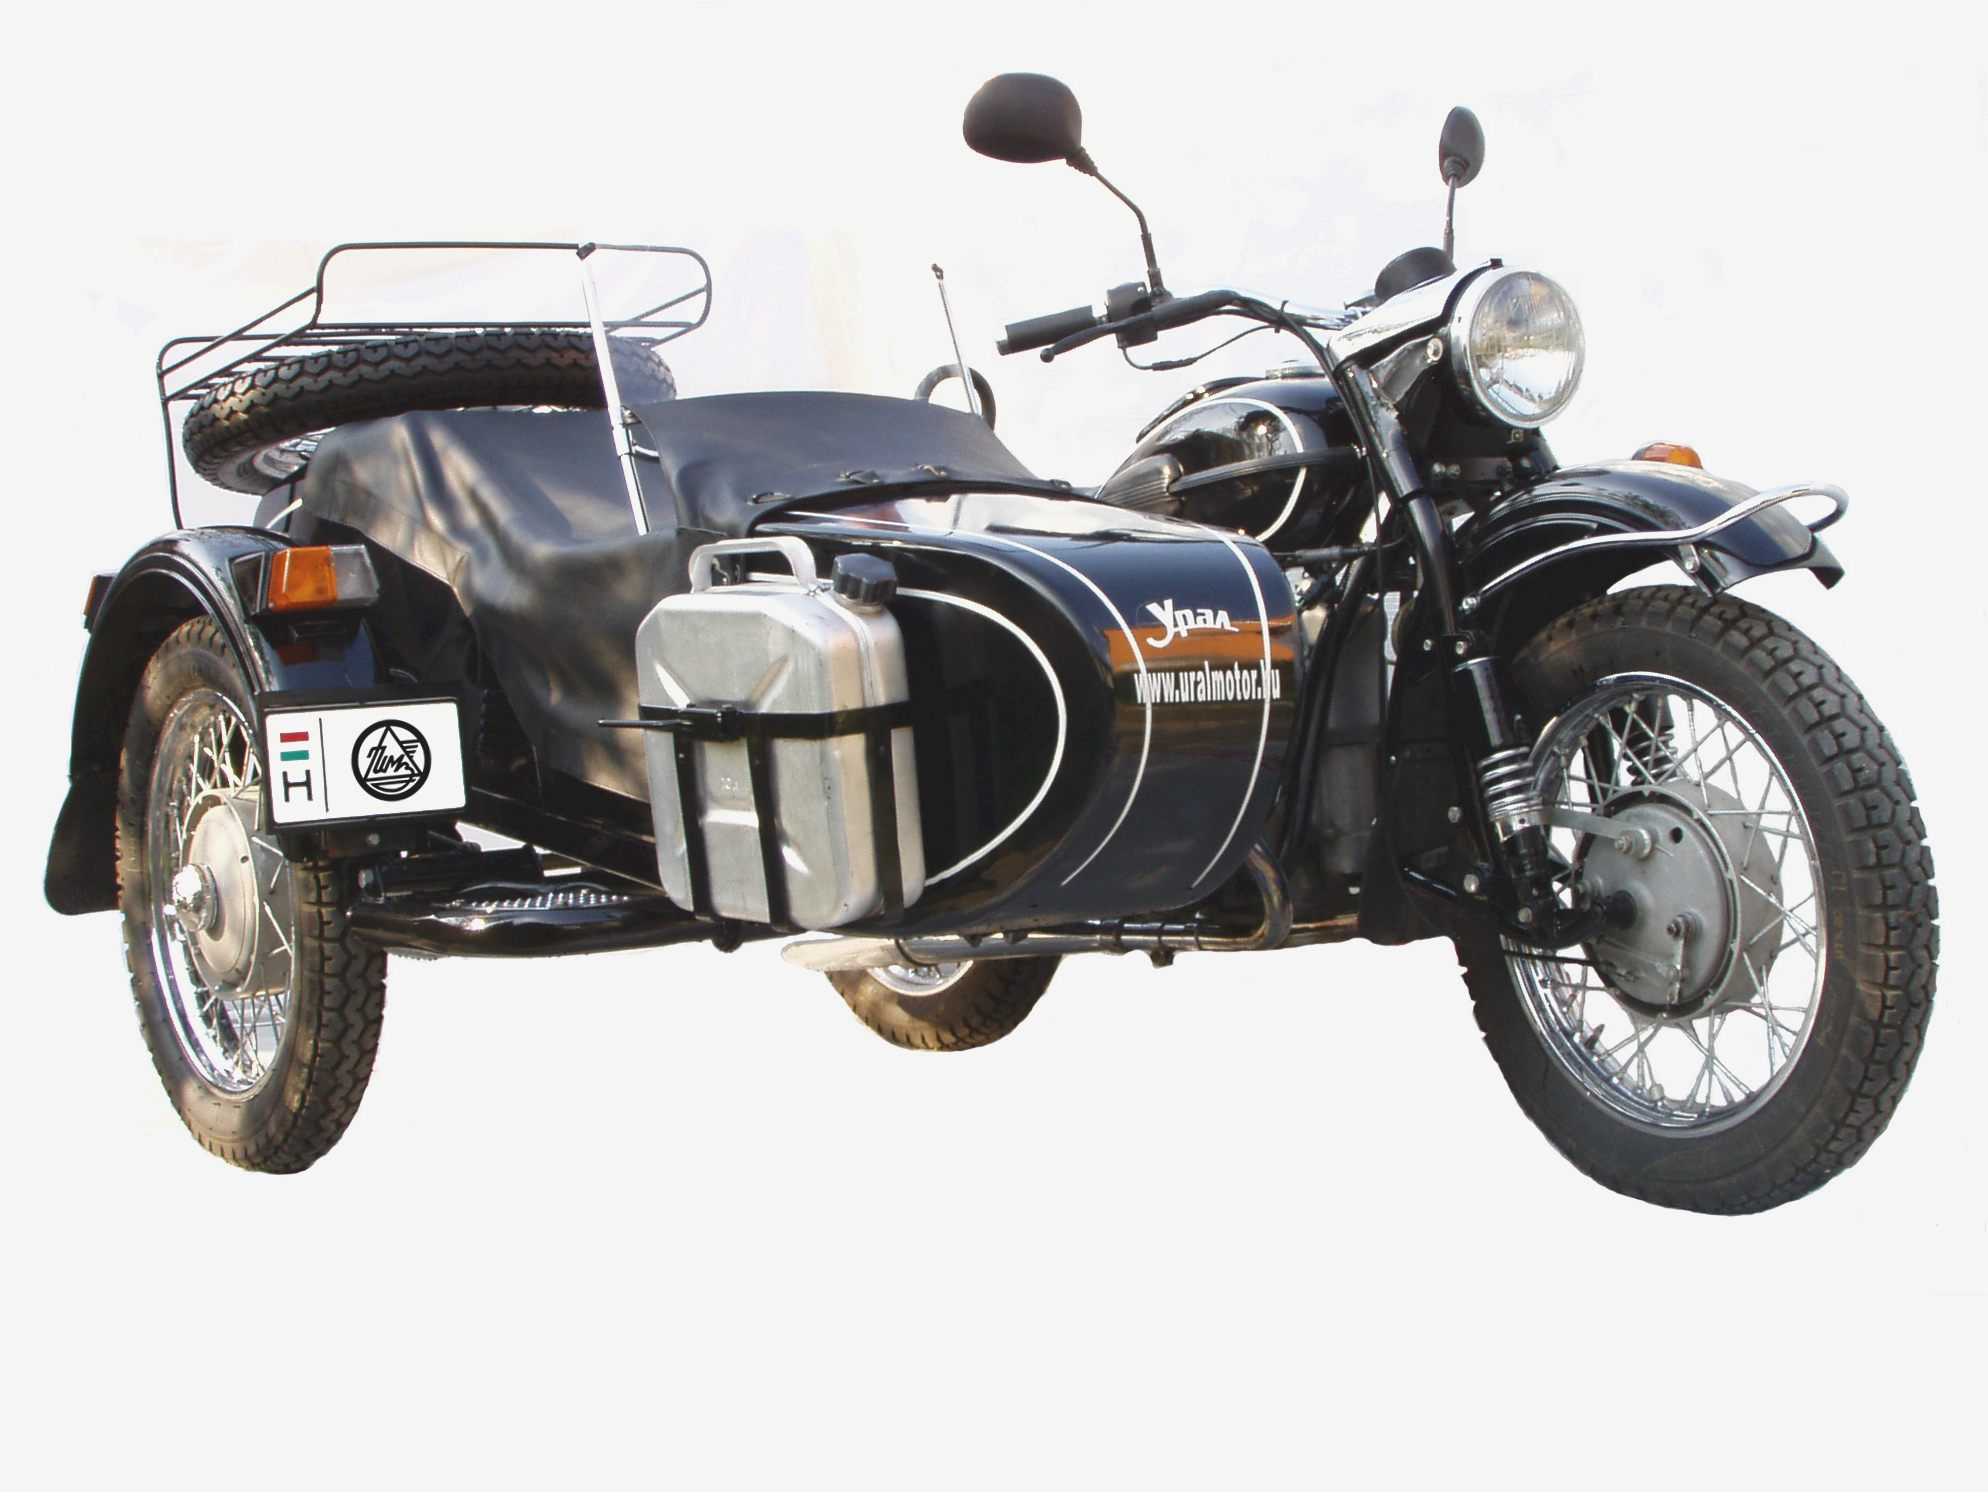 Ural M-63 with sidecar 1978 images #127232